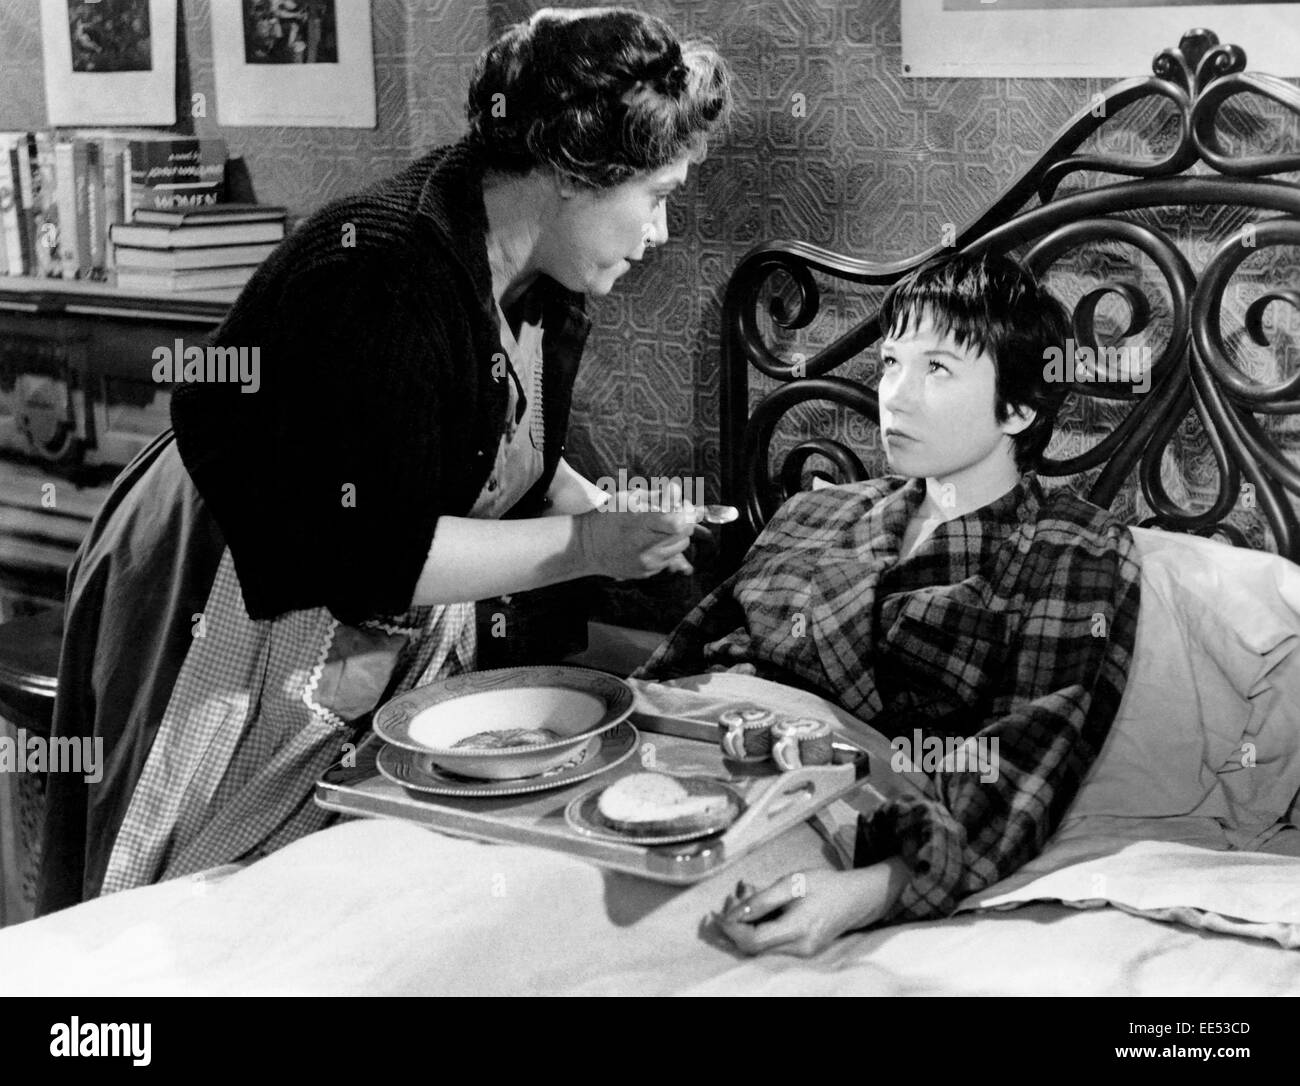 Naomi Stevens and Shirley MacLaine, on-set of the Film, 'The Apartment', 1960 - Stock Image